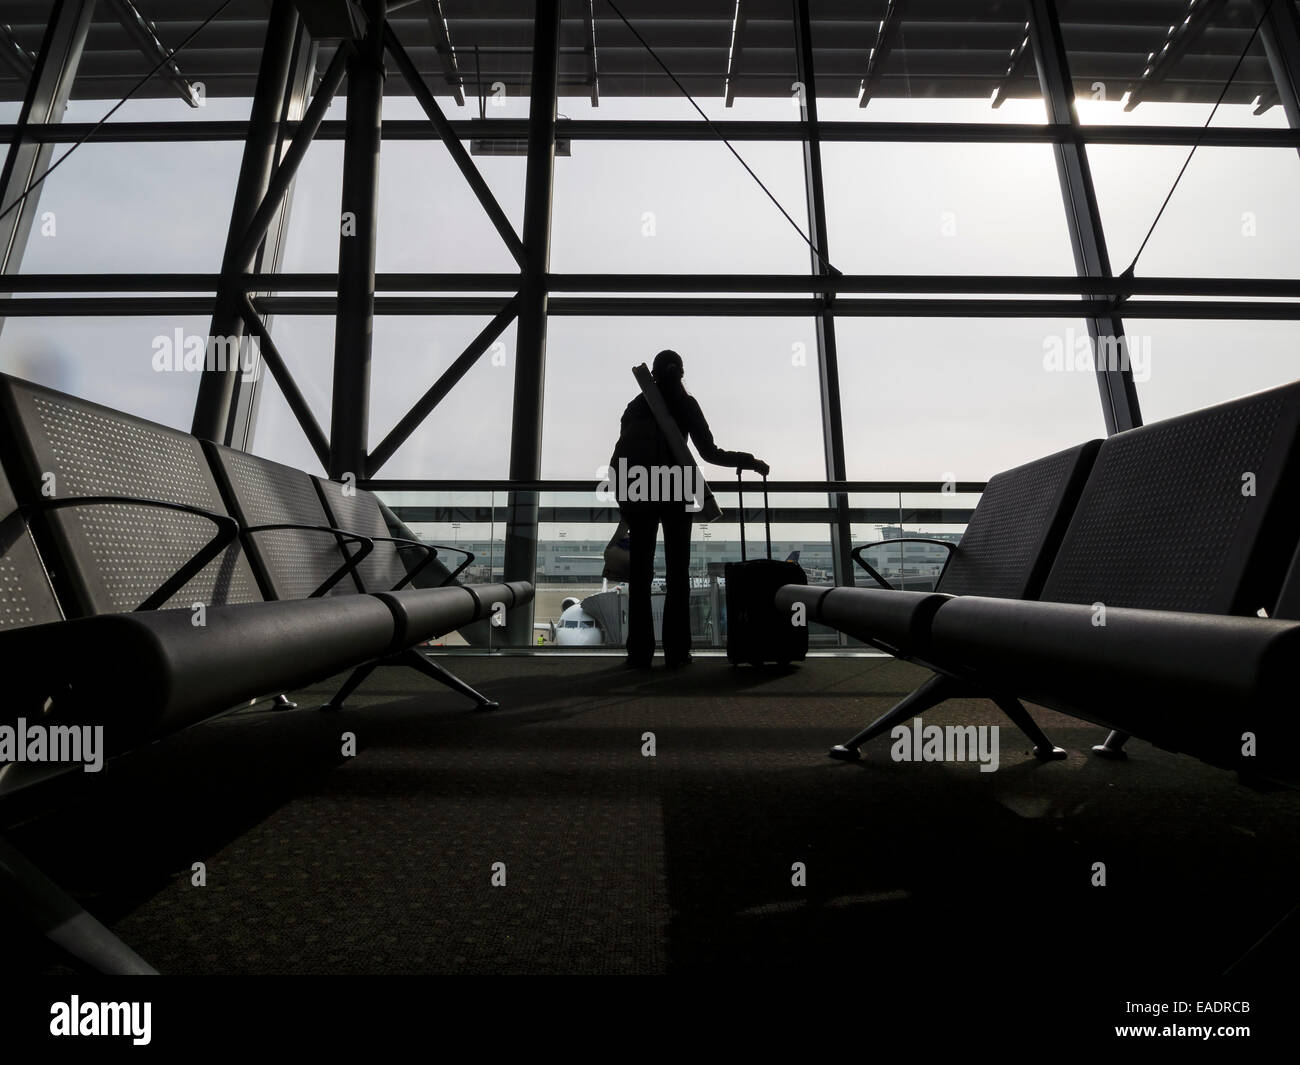 Silhouette of a person with a rolling suitcase in front of an airport terminal window - Stock Image